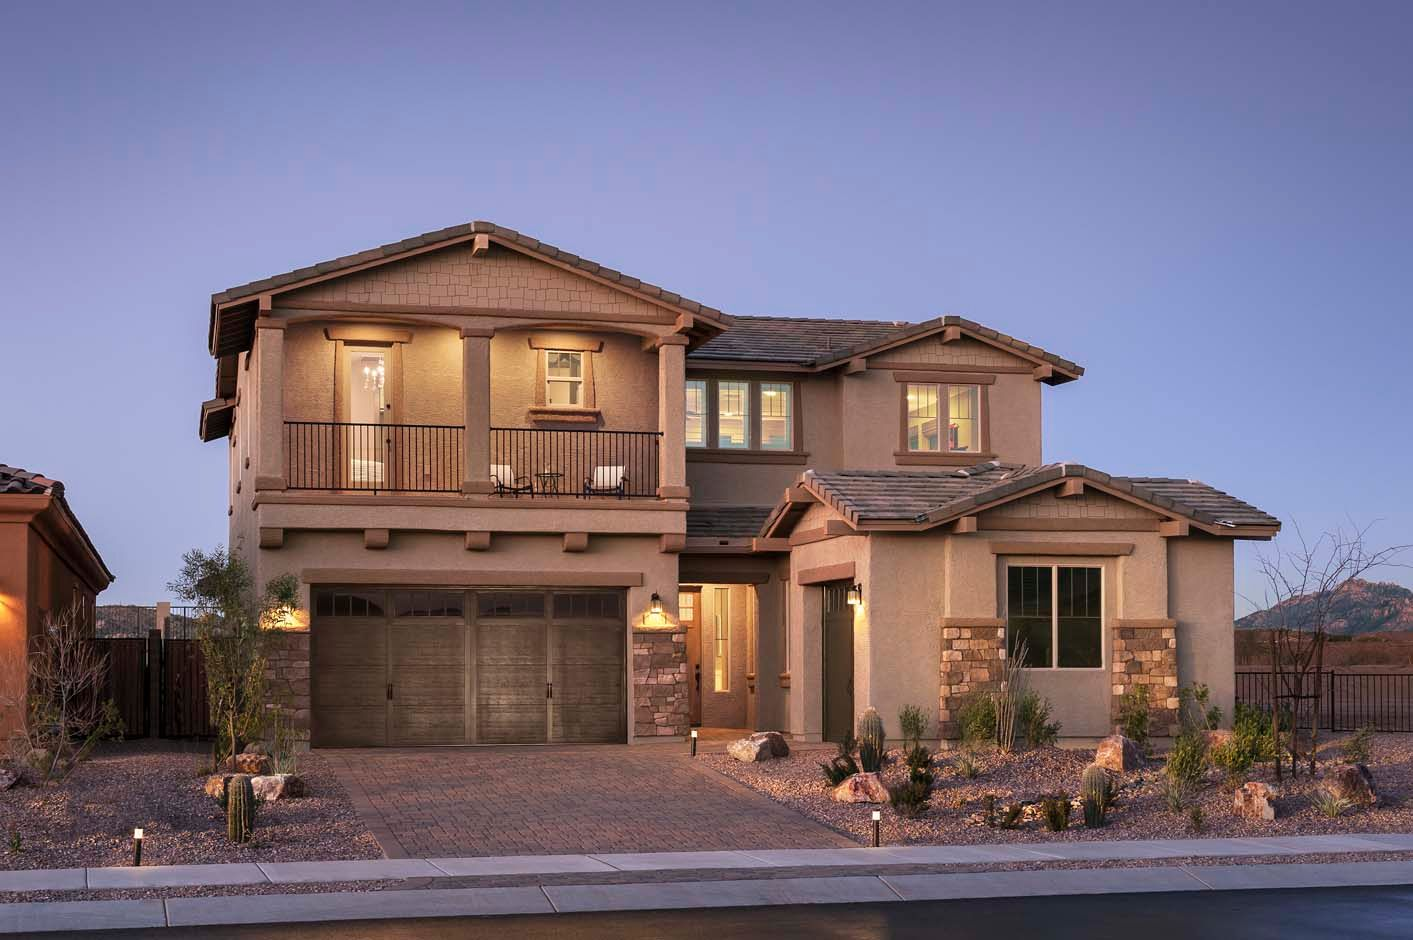 Maracay Homes, The Cove At Center Pointe Vistoso, Winslow